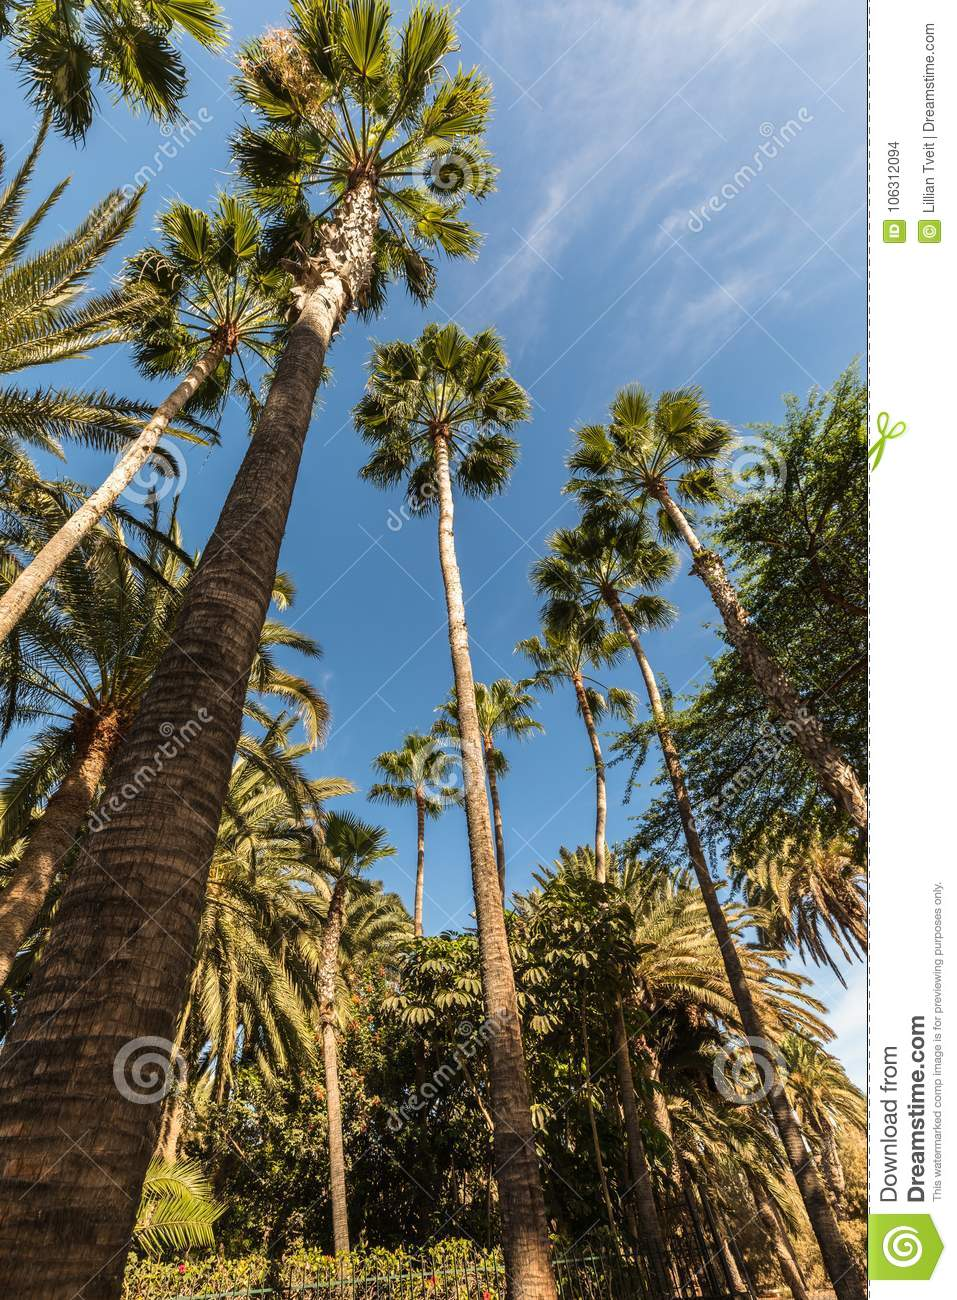 Palm trees reaching towards a blue sky. Frog perspective.